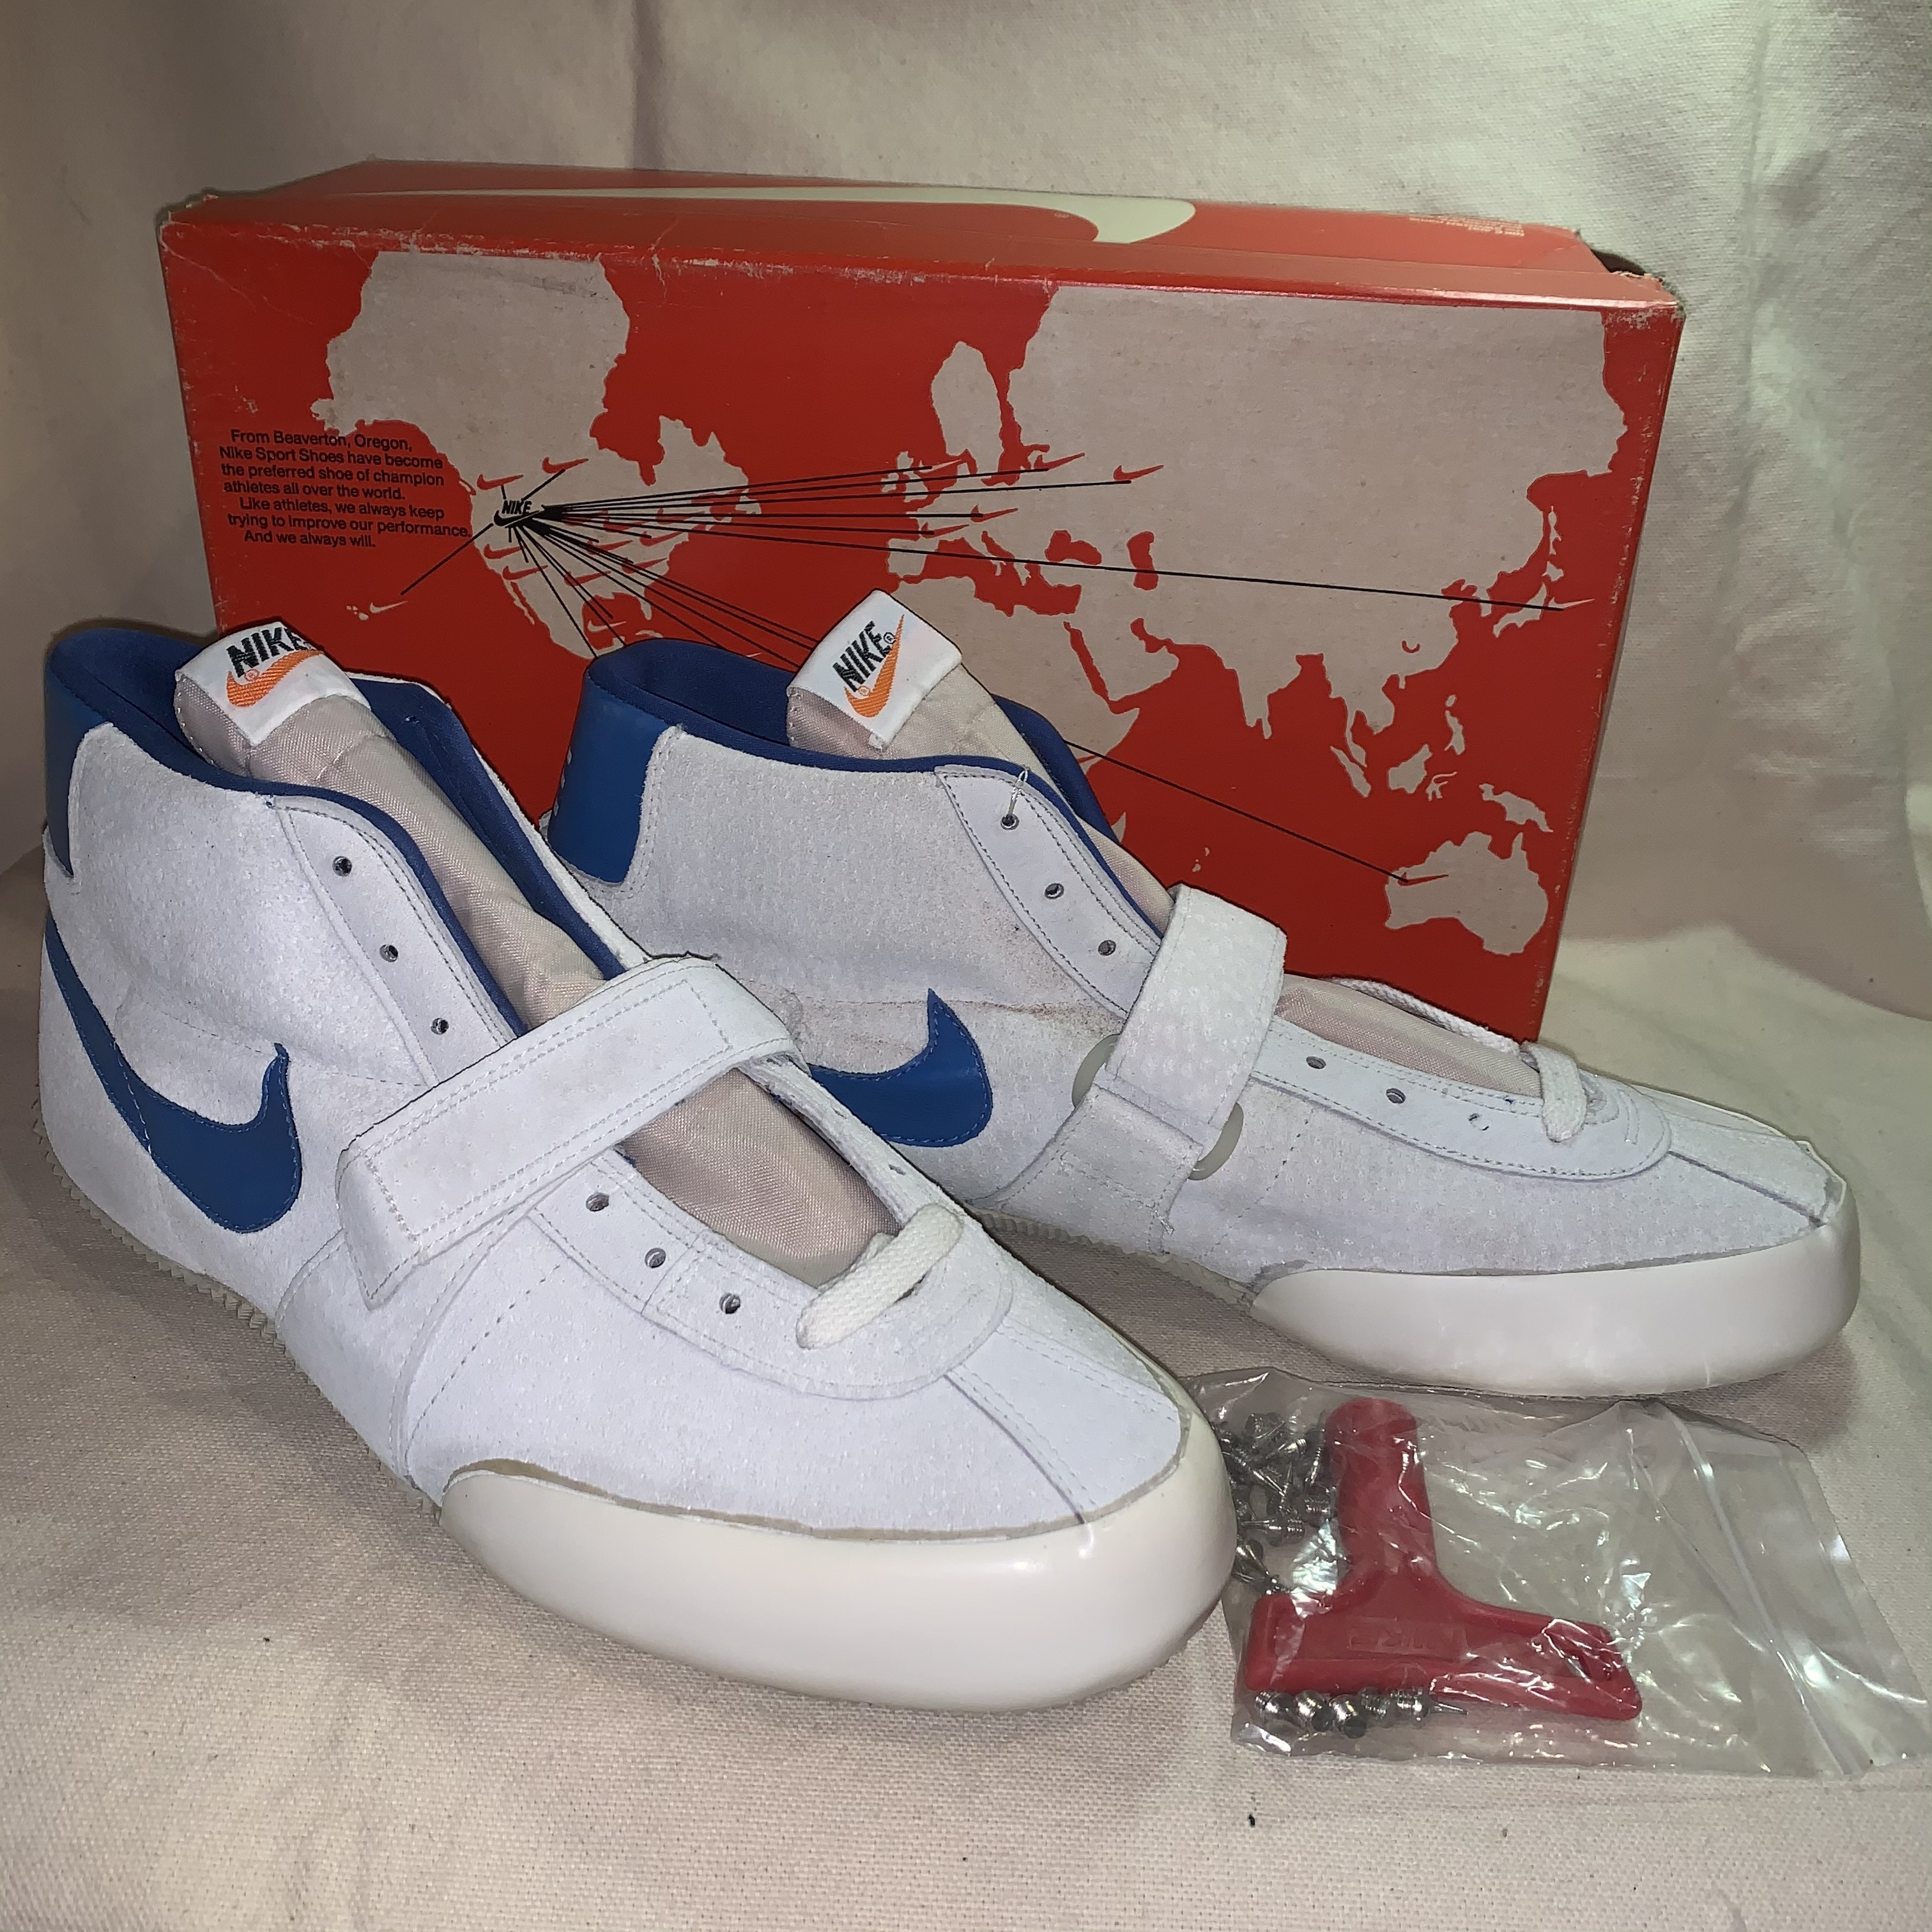 70's NIKE JAVALIN  US12.5 競技用/スパイク Made in USA  Dead Stock / オレンジタブ/縦ナイキ